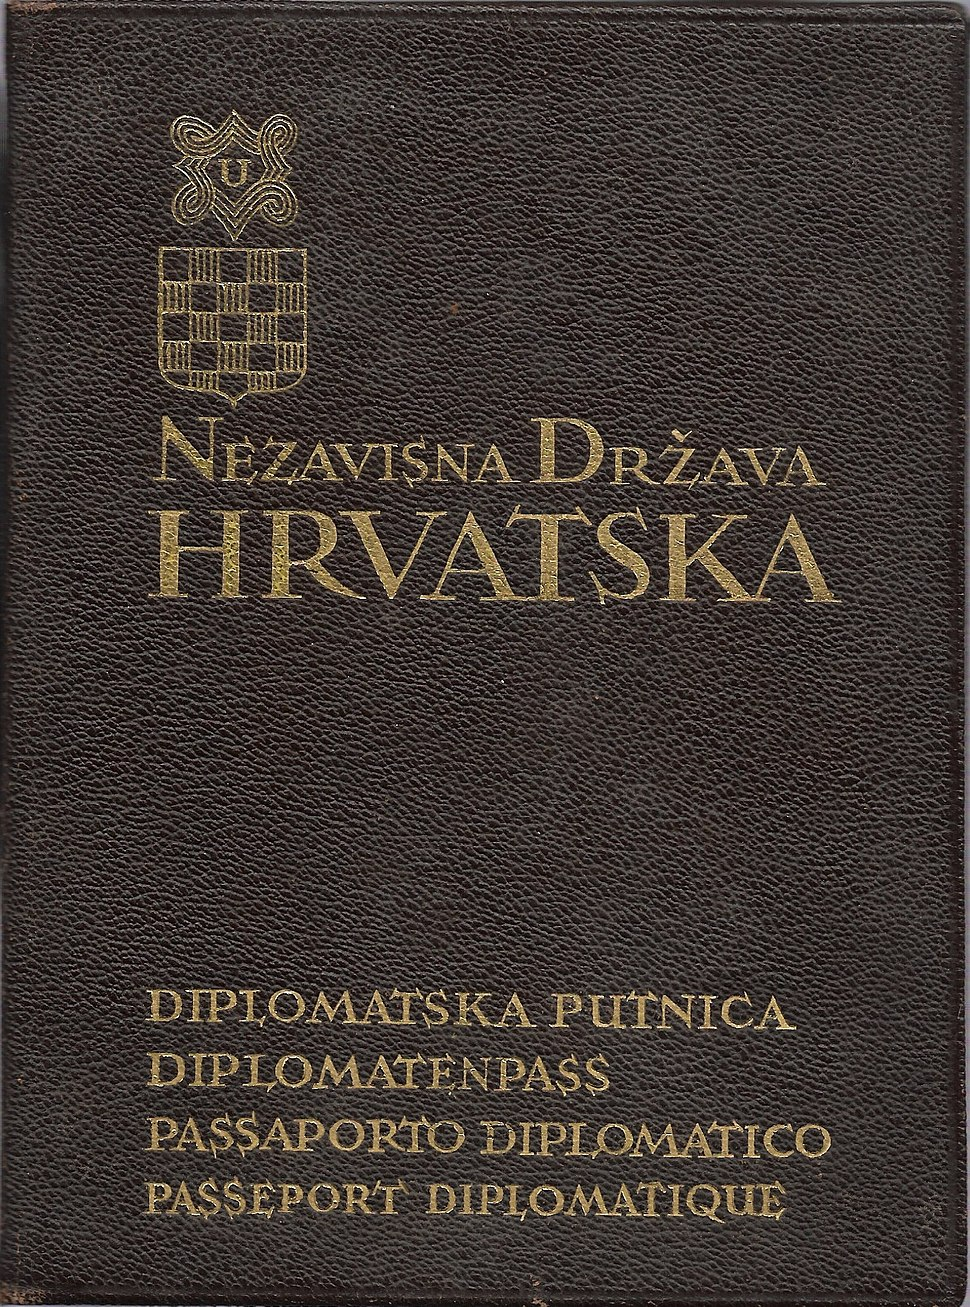 Croatian Diplomatic passport issued in 1941 to Dr. Mladen Lorkovic